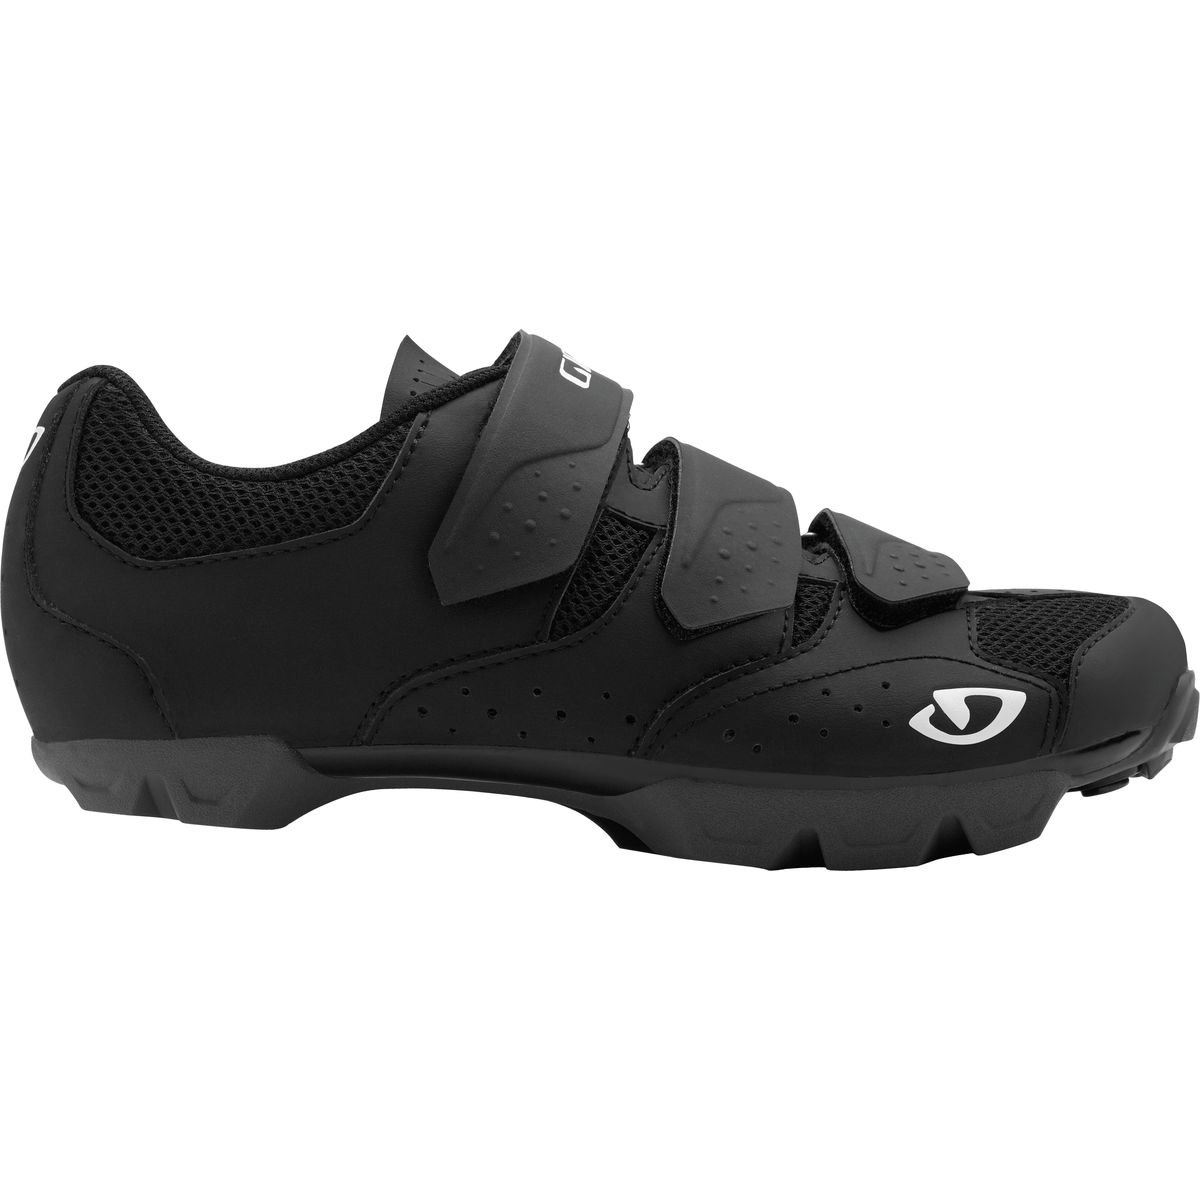 Giro Riela R II Cycling Shoes - Women's Black 38 by Giro (Image #1)